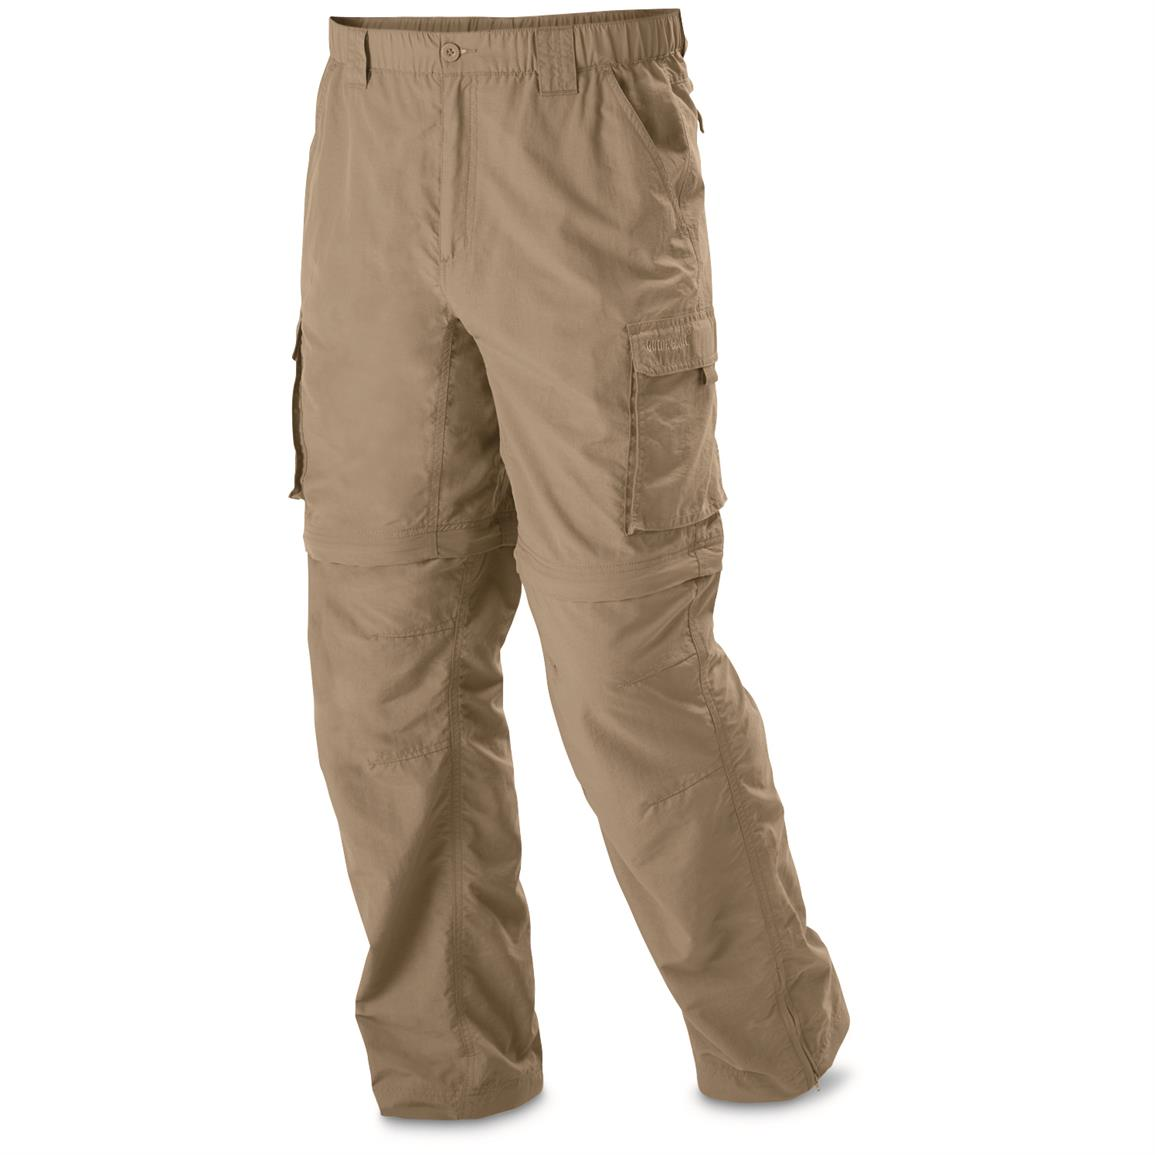 Guide Gear Men's Zip Off River Pants, Khaki